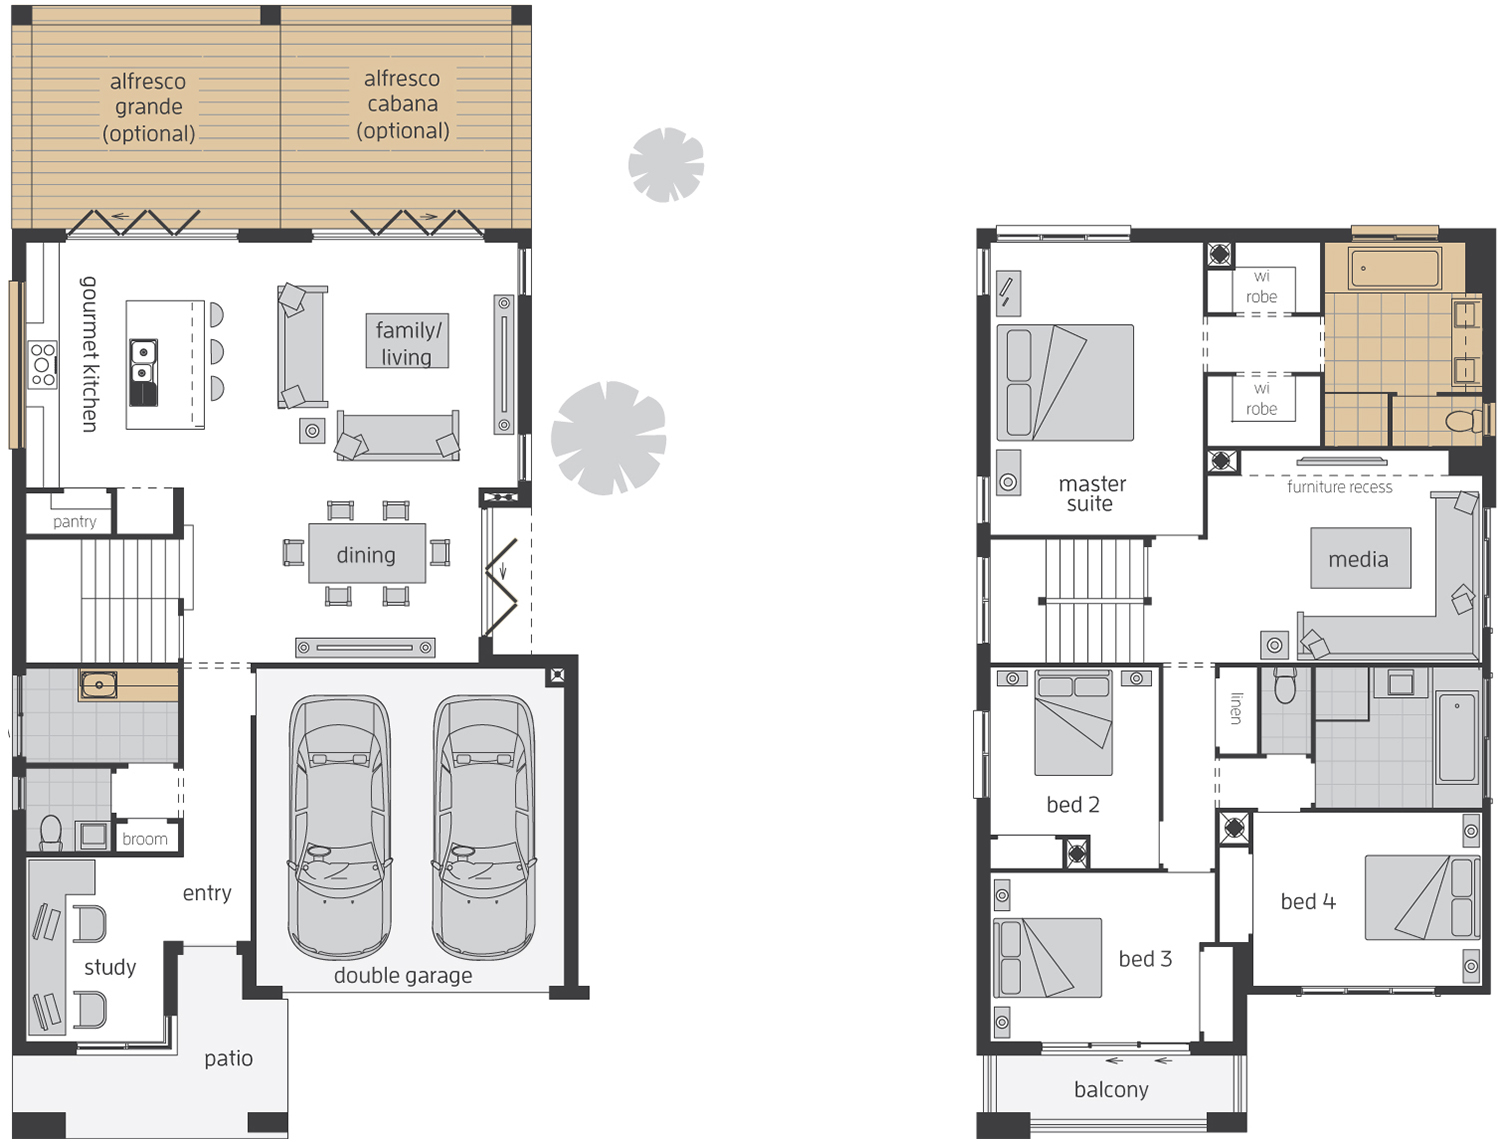 Floor Plan - Edenvale 33 Luxury Two Storey Home - McDonald Jones